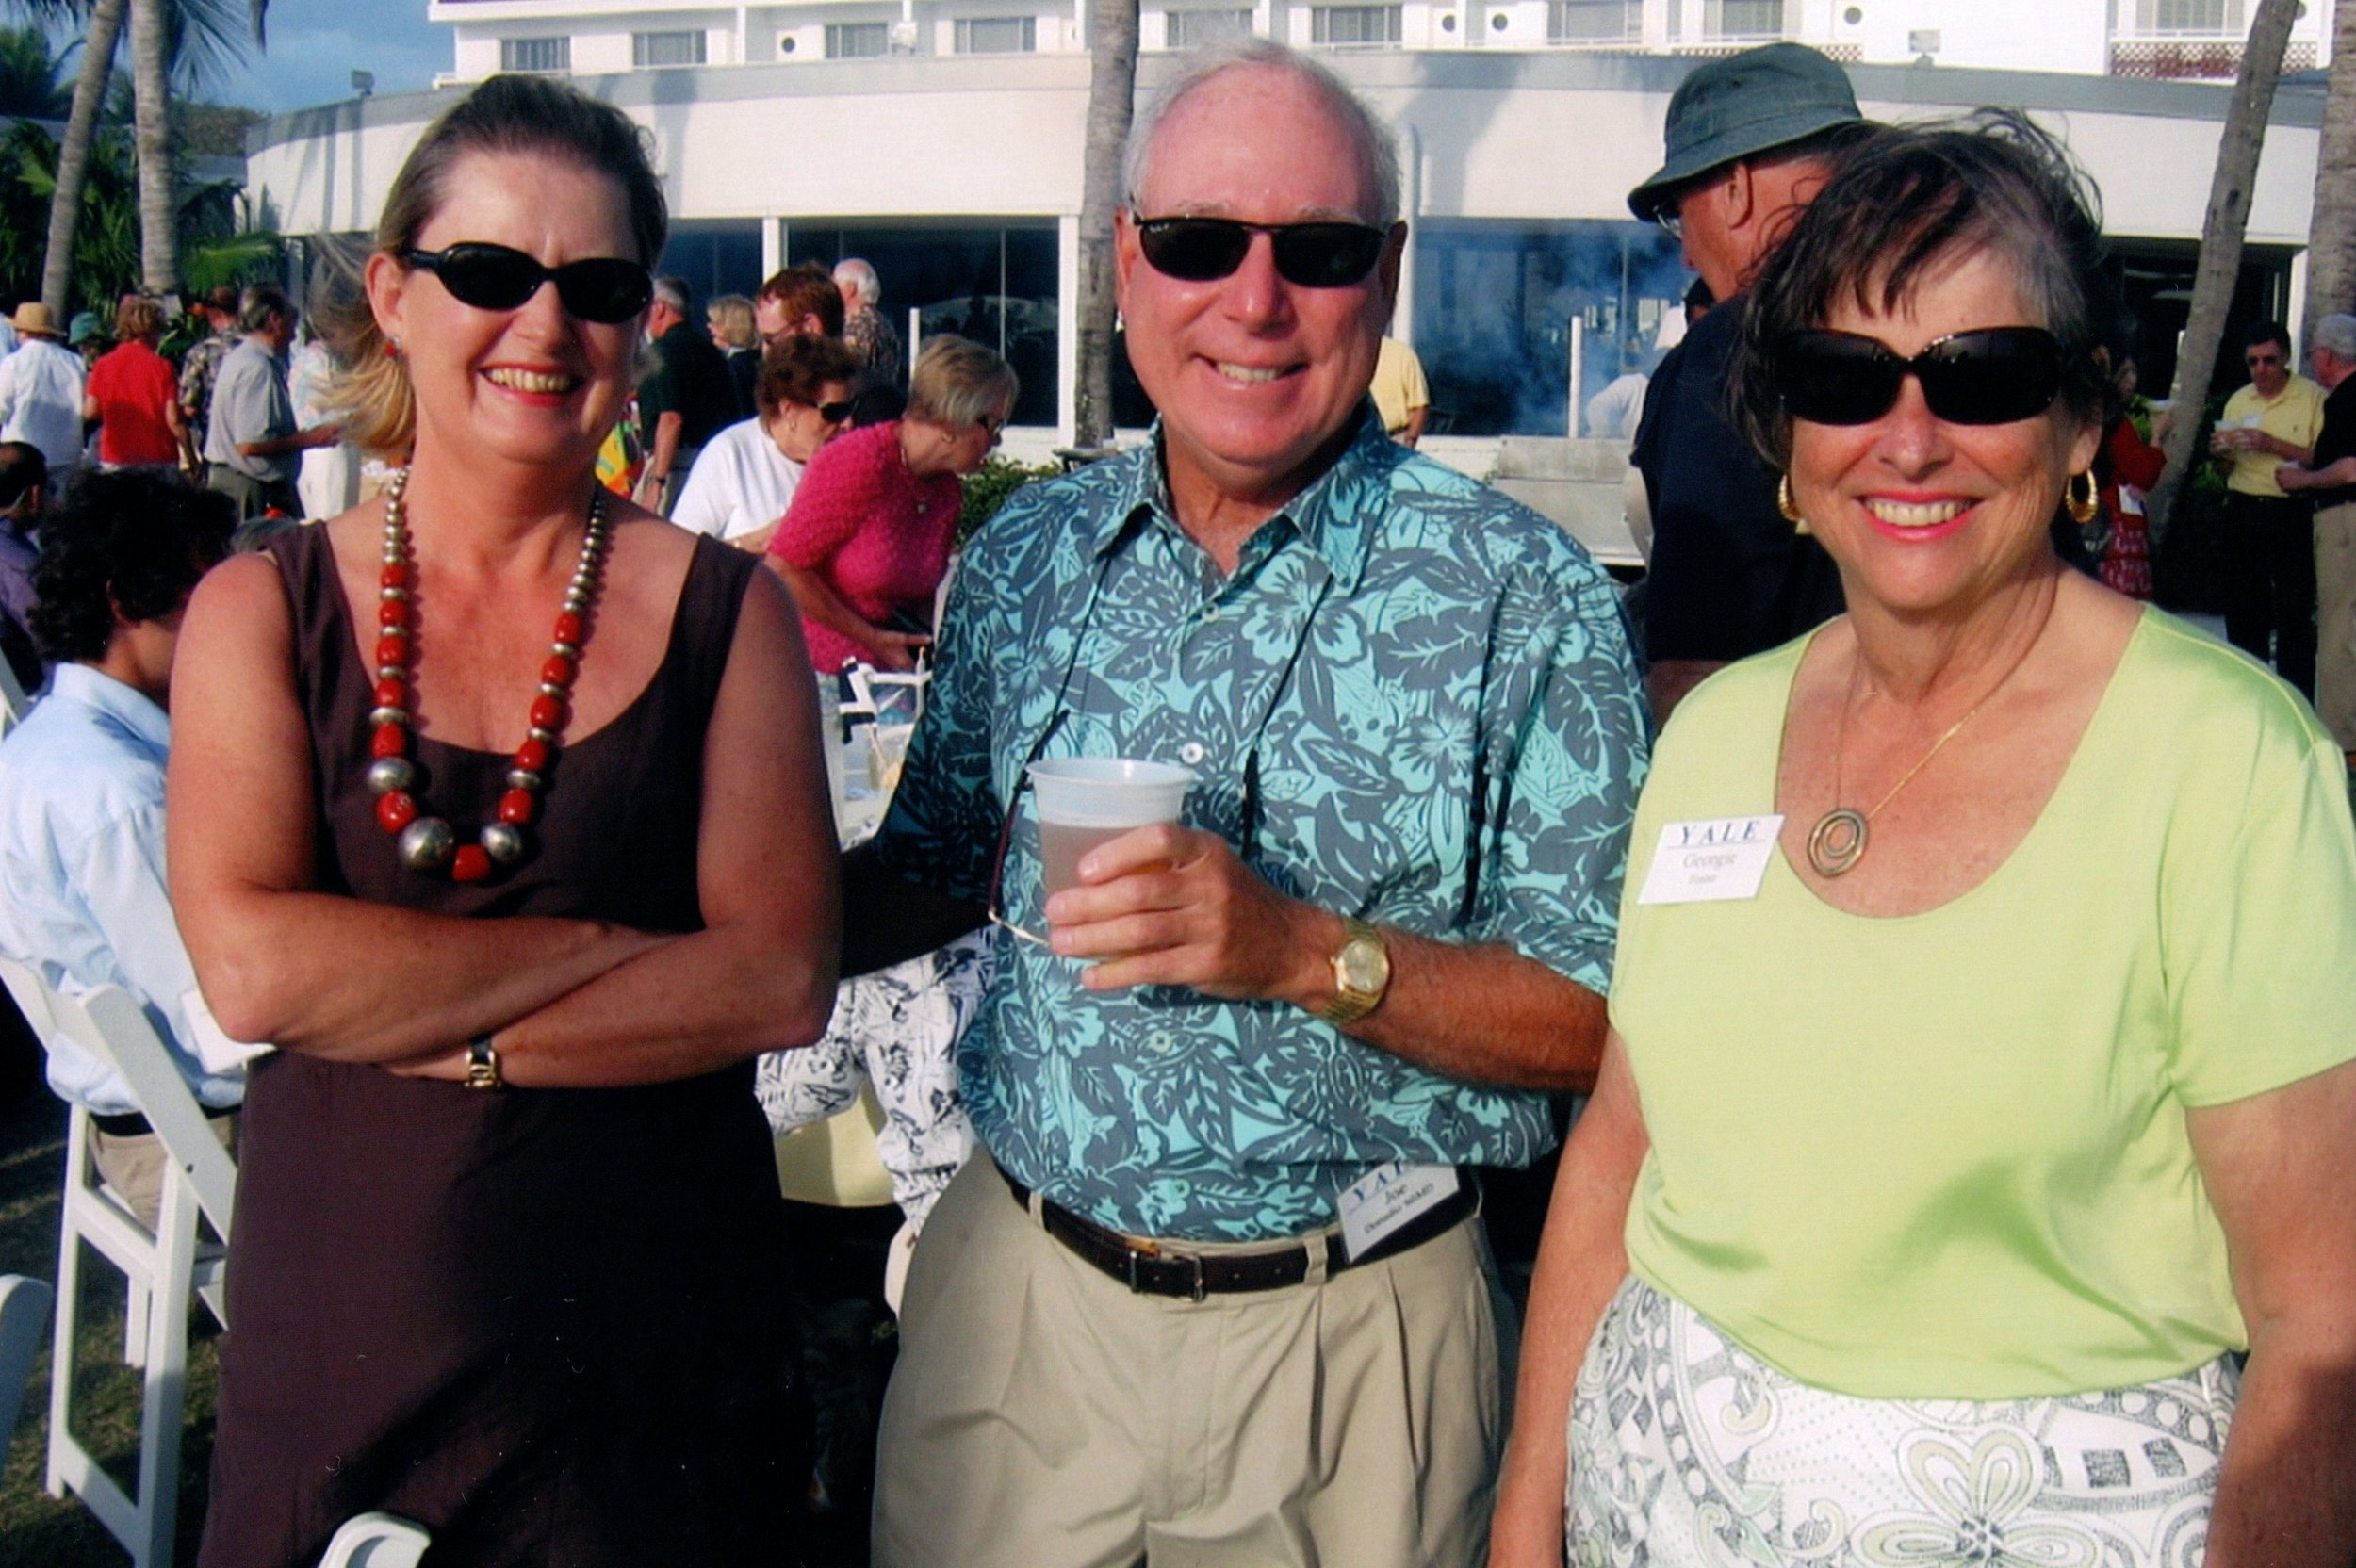 4_1_2007 - IVY LEAGUE PICNIC - NAPLES BEACH HOTEL 1.jpg